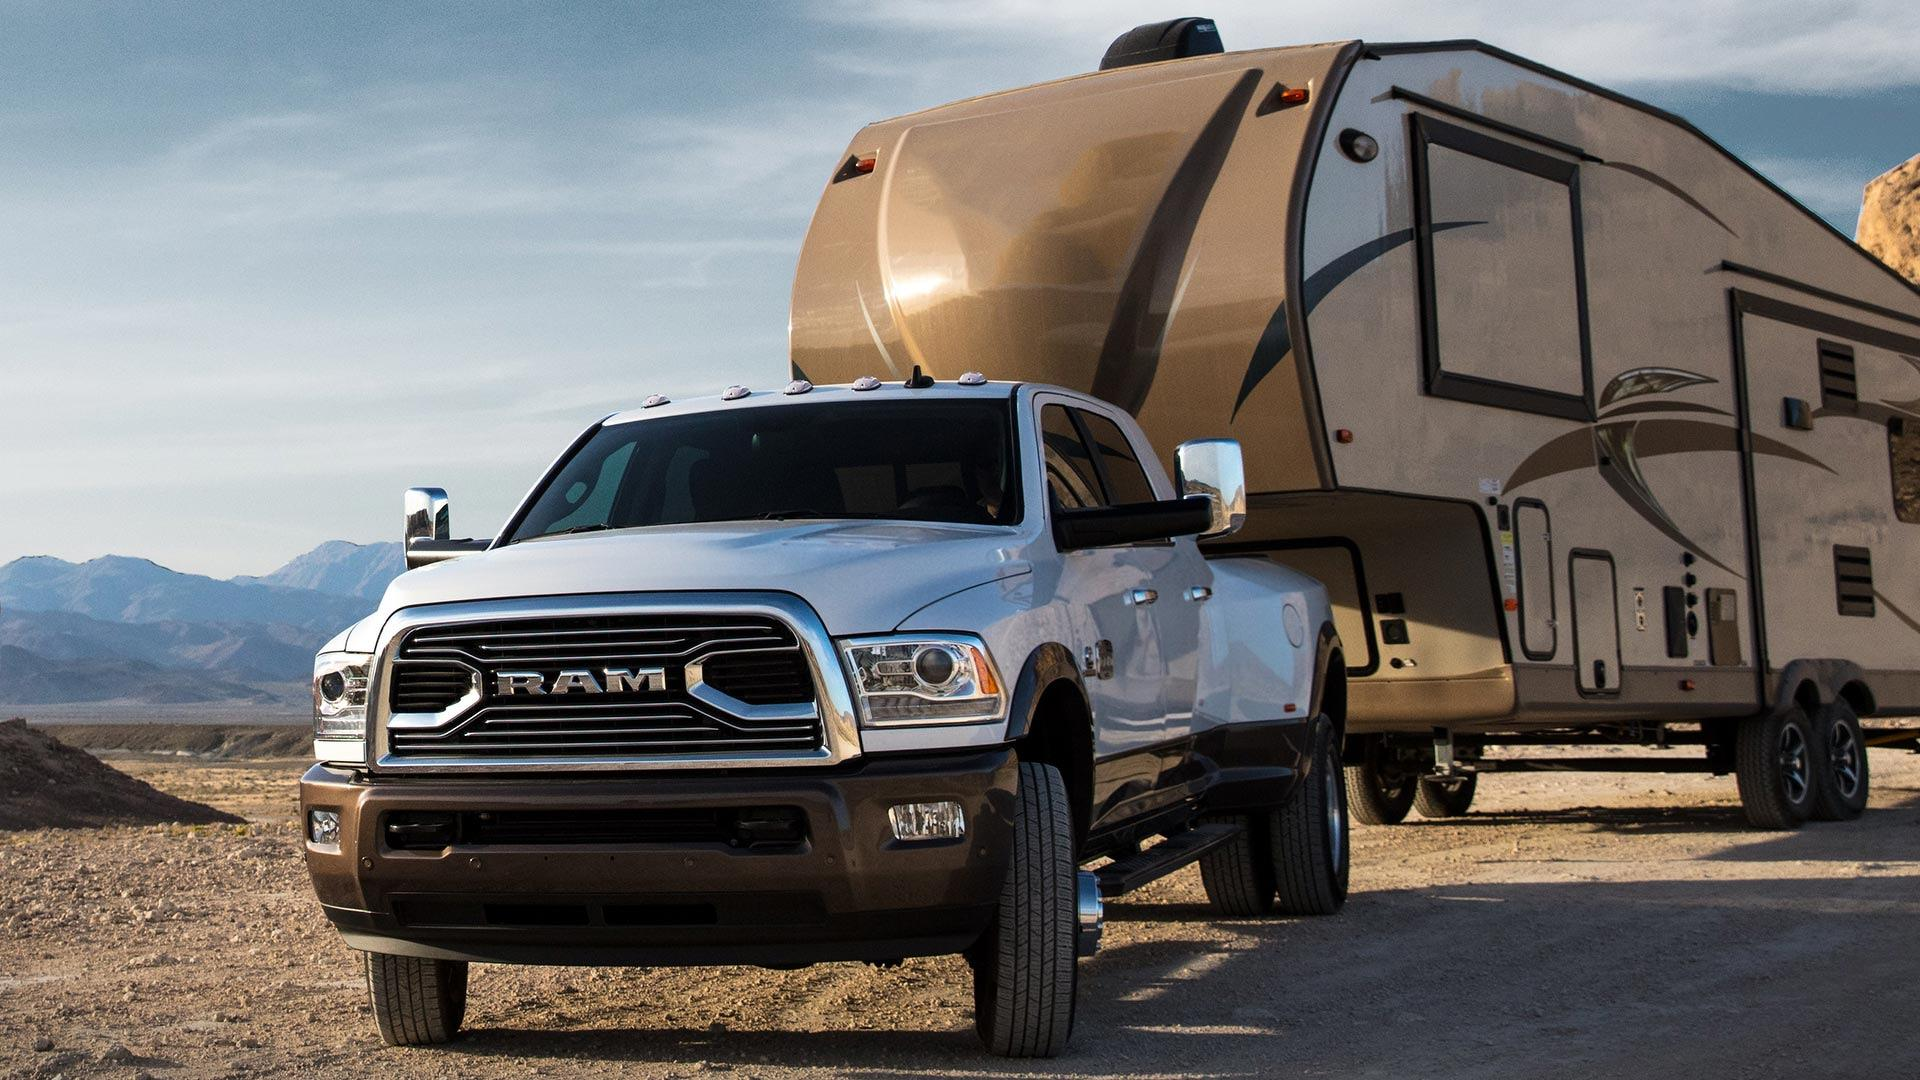 2018 ram 3500 boasts 930 lb ft of torque 31 210 lb fifth wheel towing capacity autoevolution. Black Bedroom Furniture Sets. Home Design Ideas